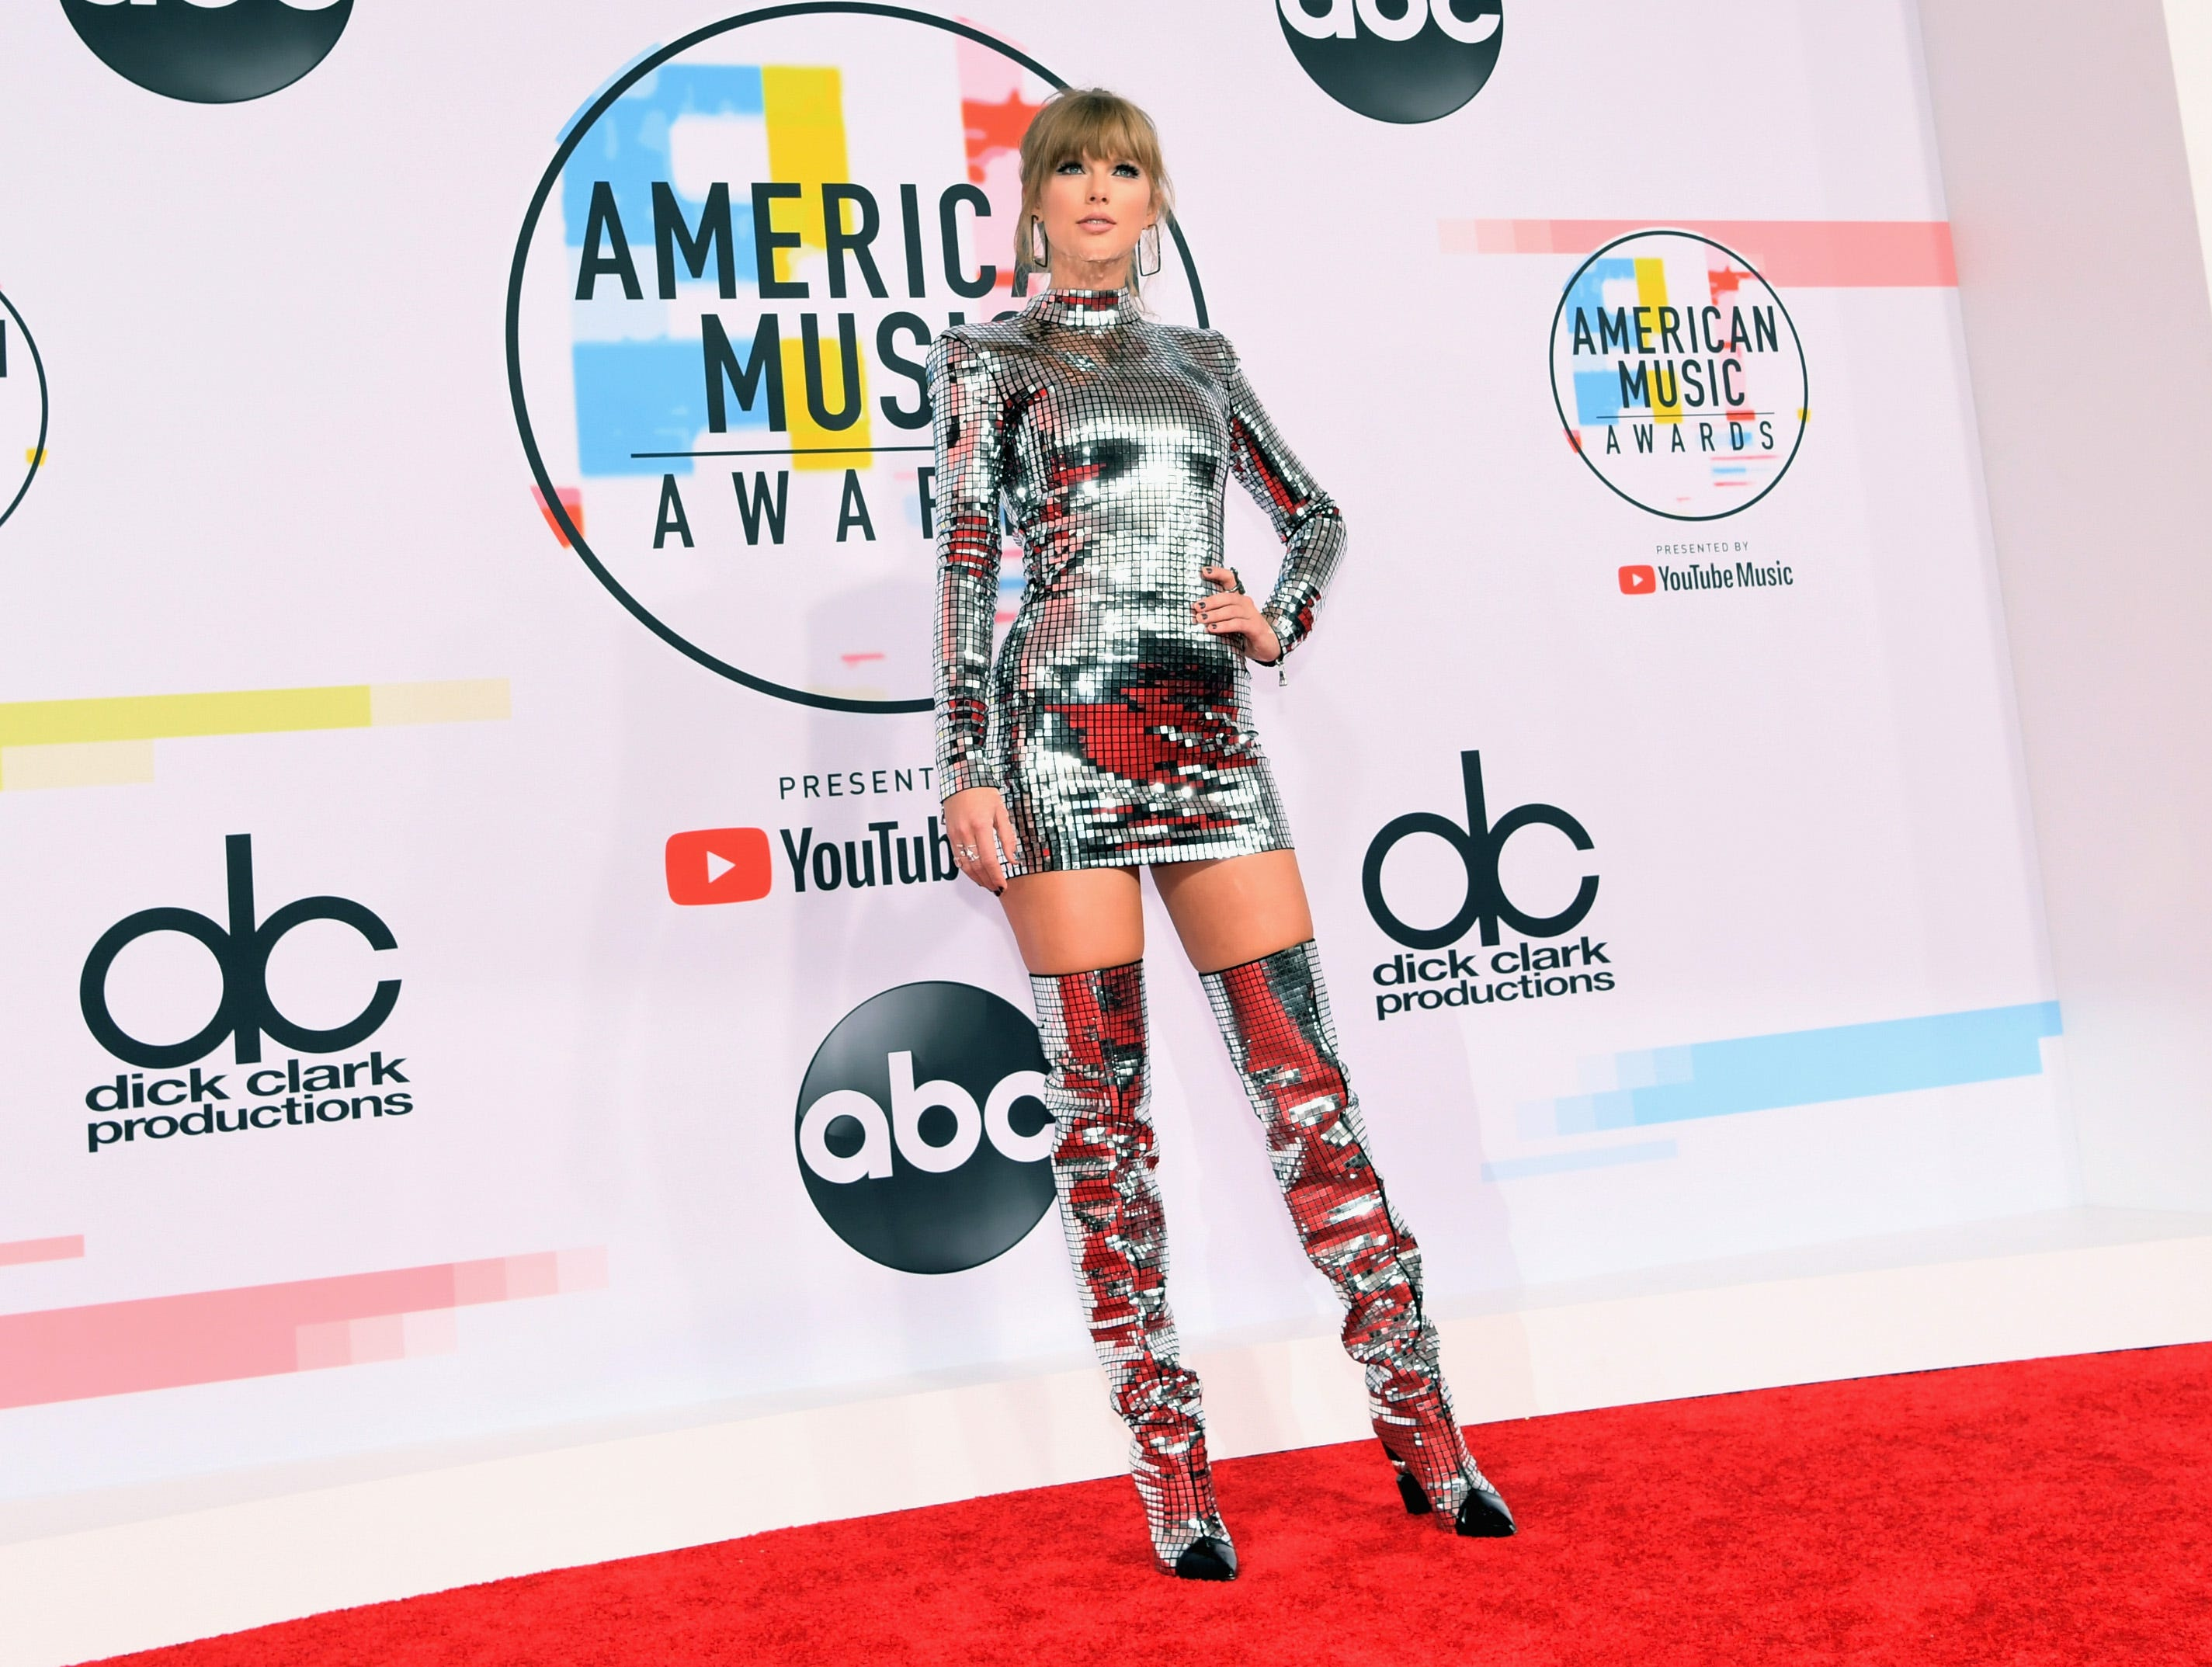 Taylor Swift attends the 2018 American Music Awards at Microsoft Theater on October 9, 2018 in Los Angeles.